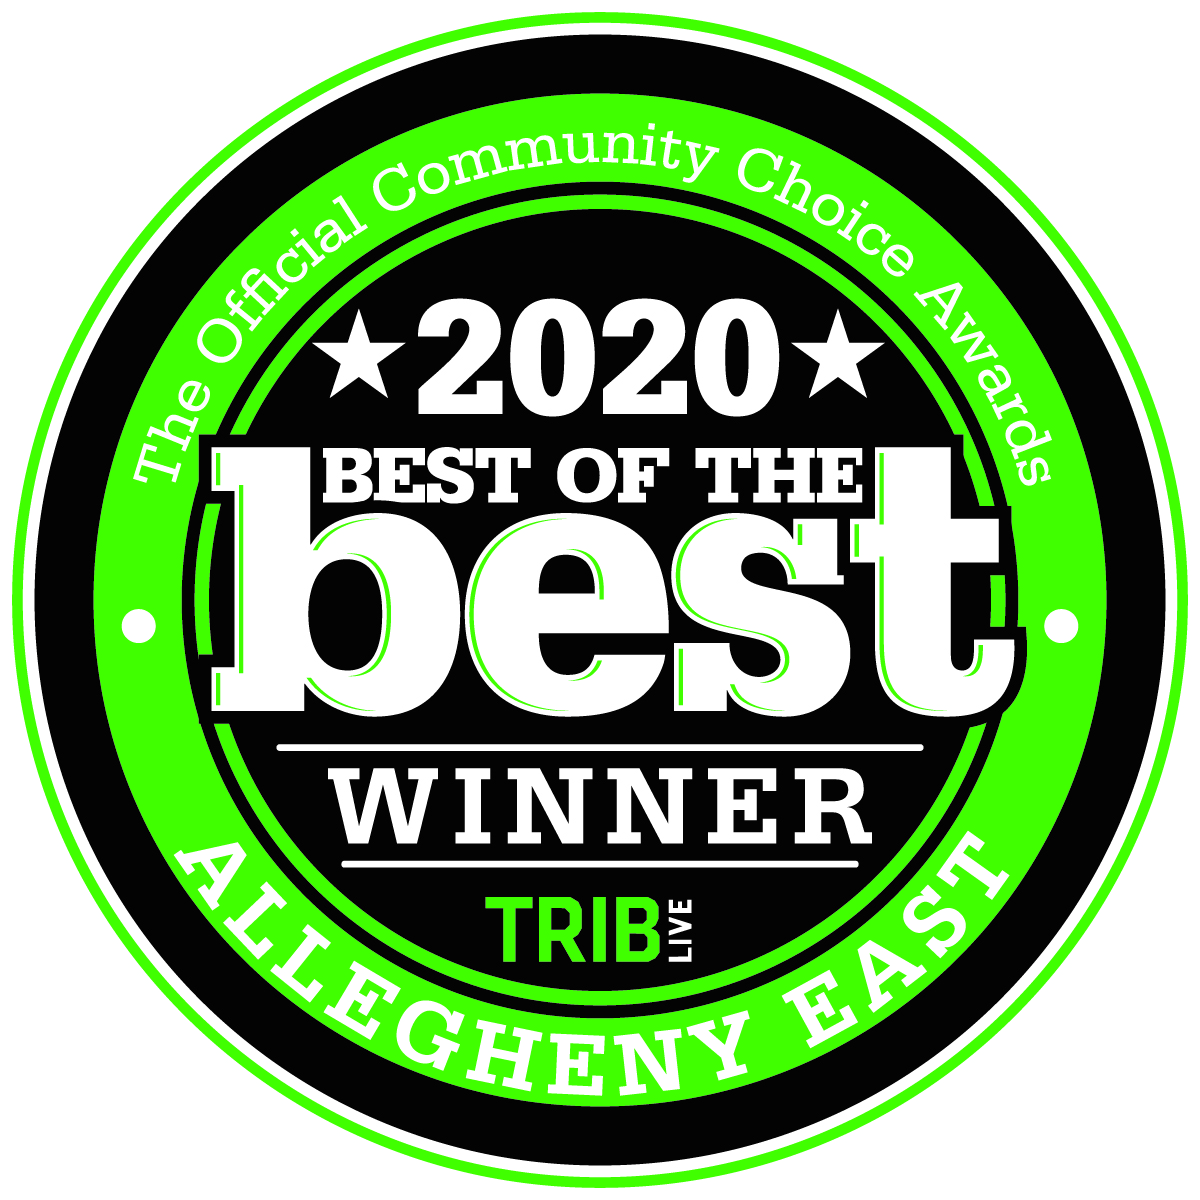 BOB20_TribAlleghenyEast_Logo_Winner_Color.jpg